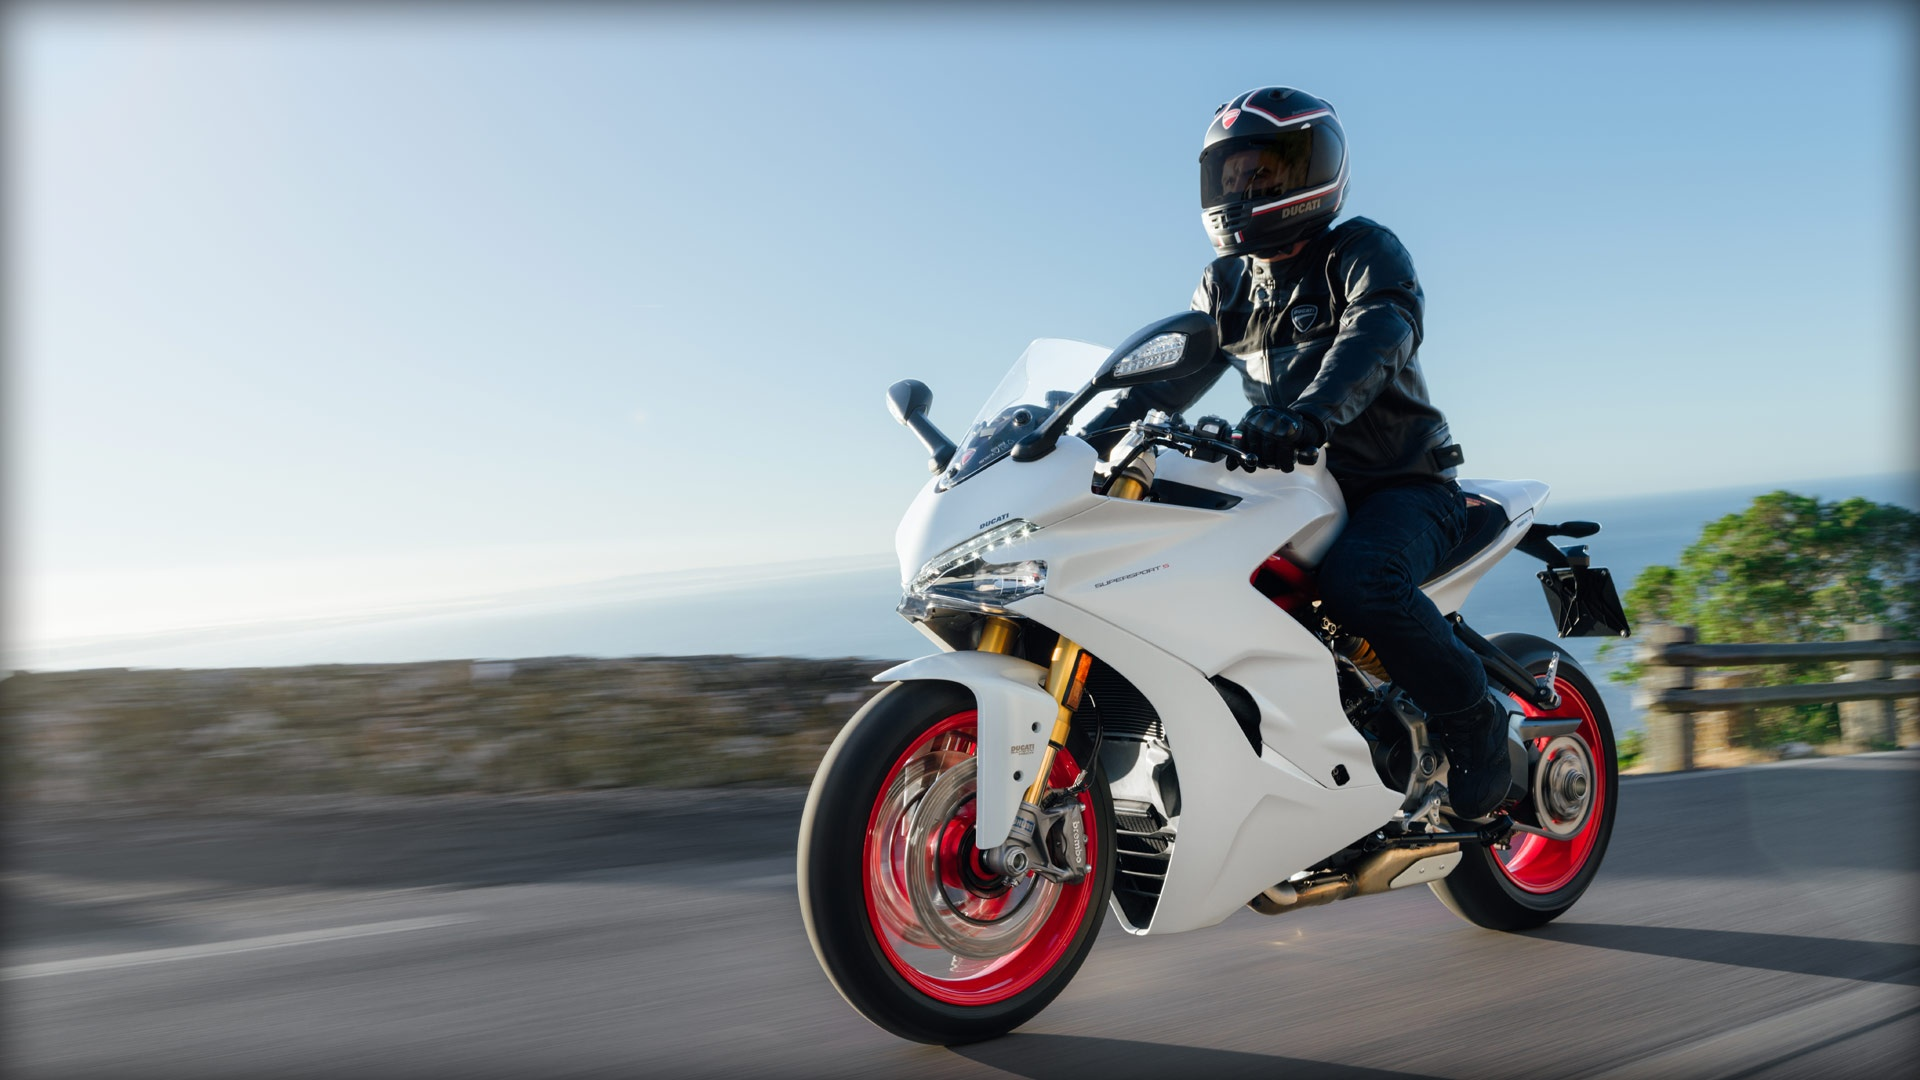 2017 Ducati Supersport S Motorcycles Thousand Oaks